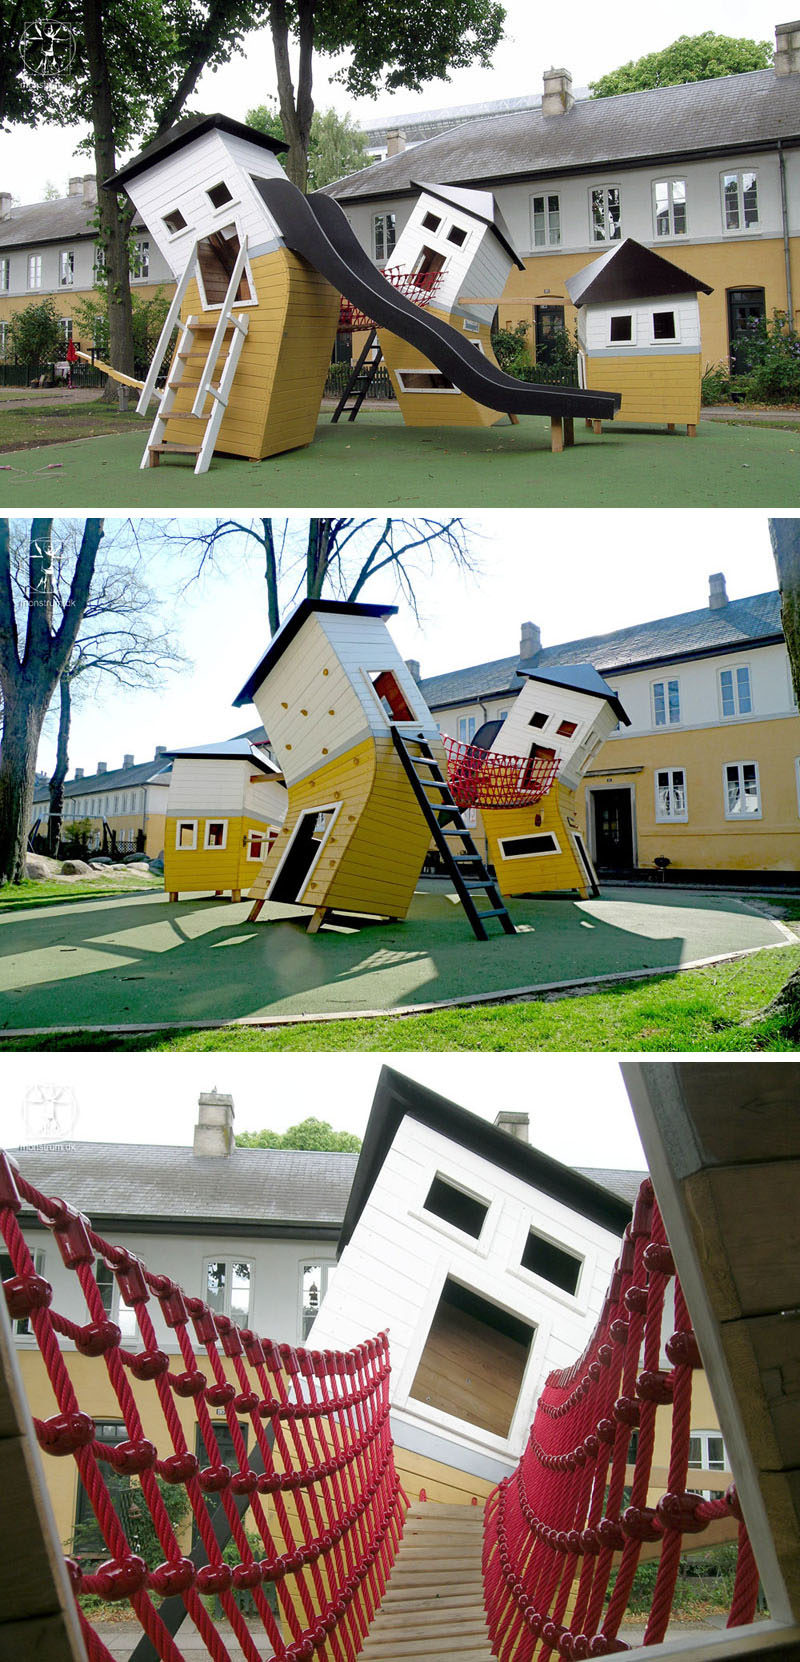 15 Amazing, Unique And Creative Playgrounds // Quirky Bent Houses